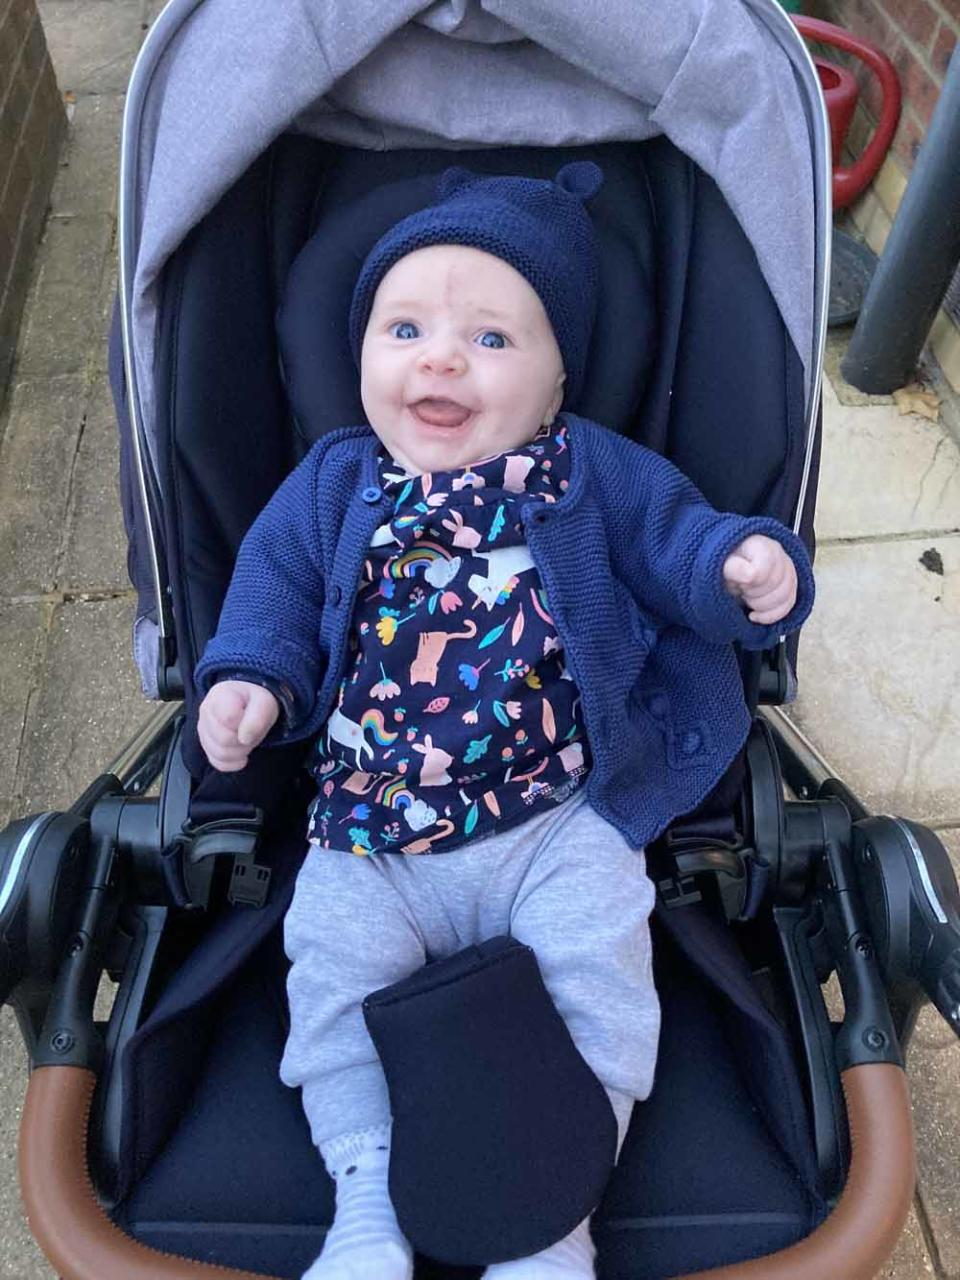 Baby Willow Grace in her pram. PA REAL LIFE